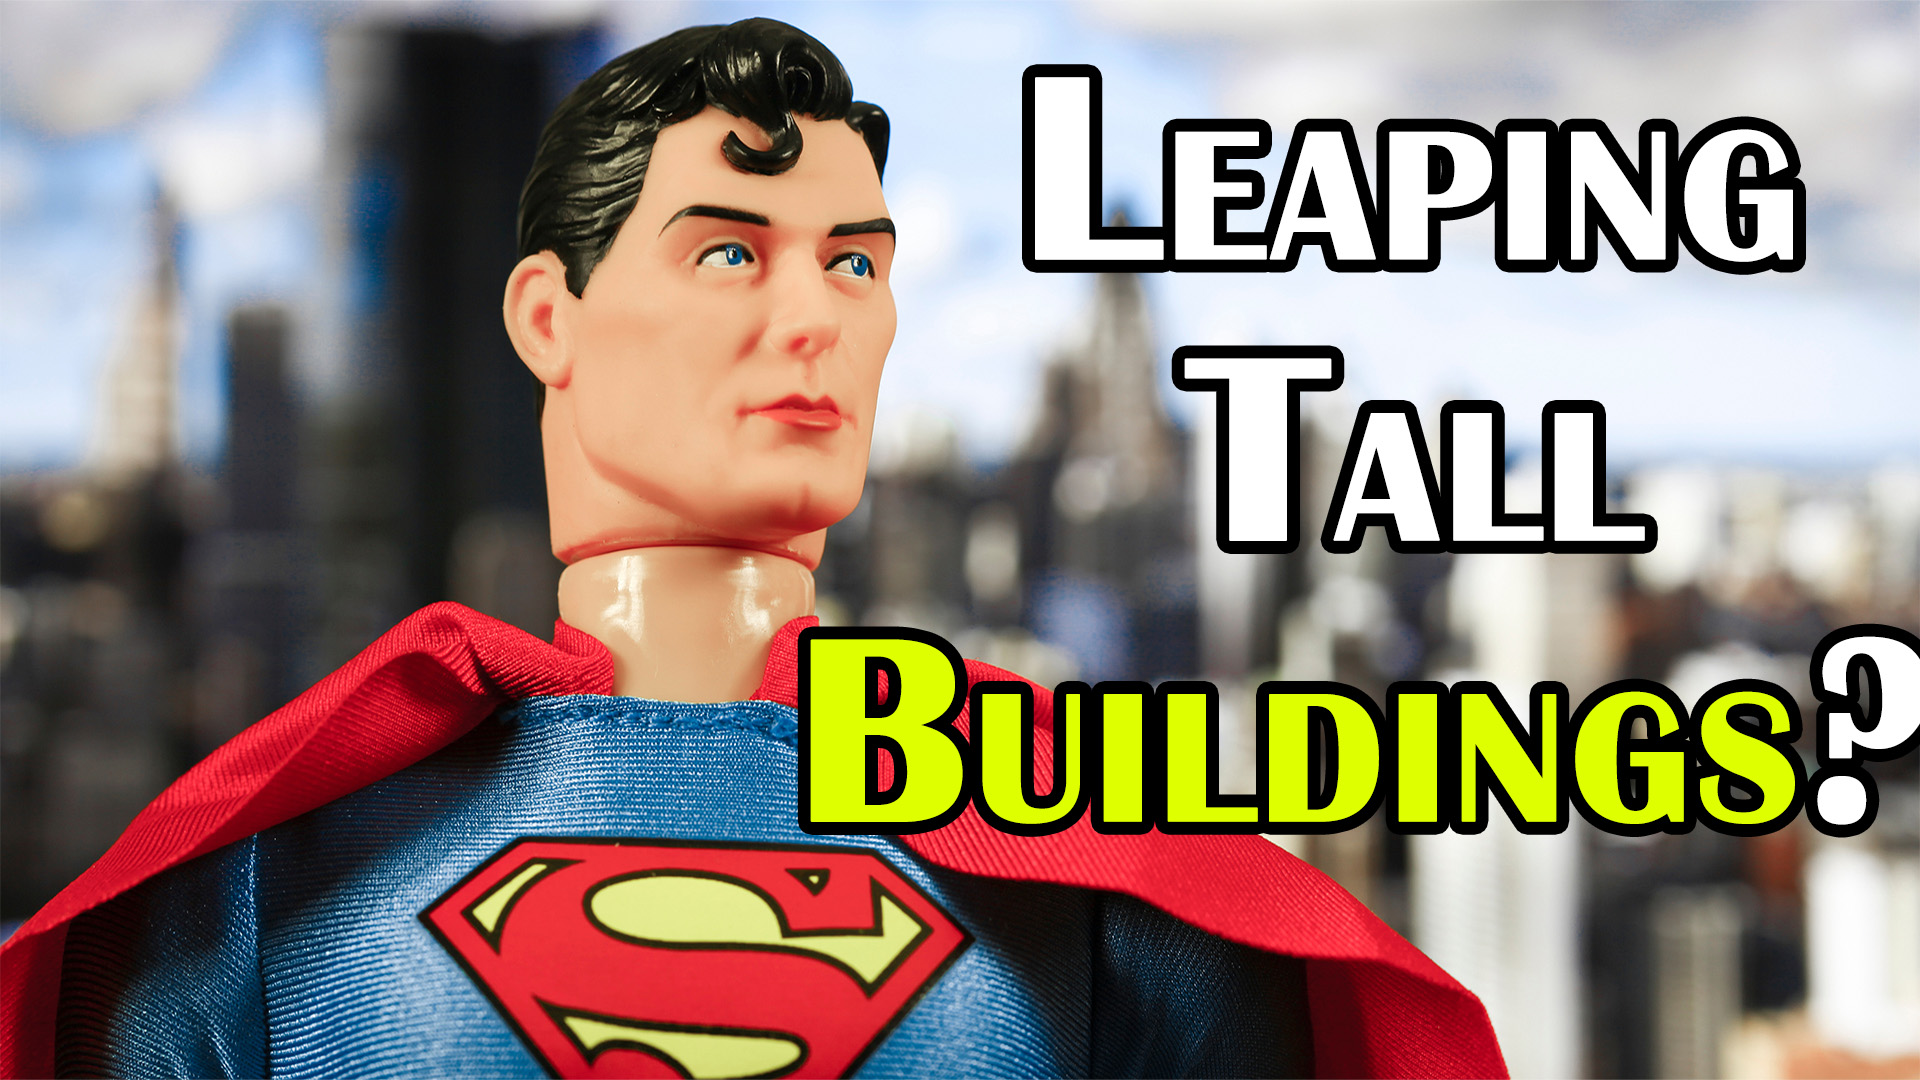 Why is Superman Described as Leaping Tall Buildings with a Single Bound When He Can Fly?